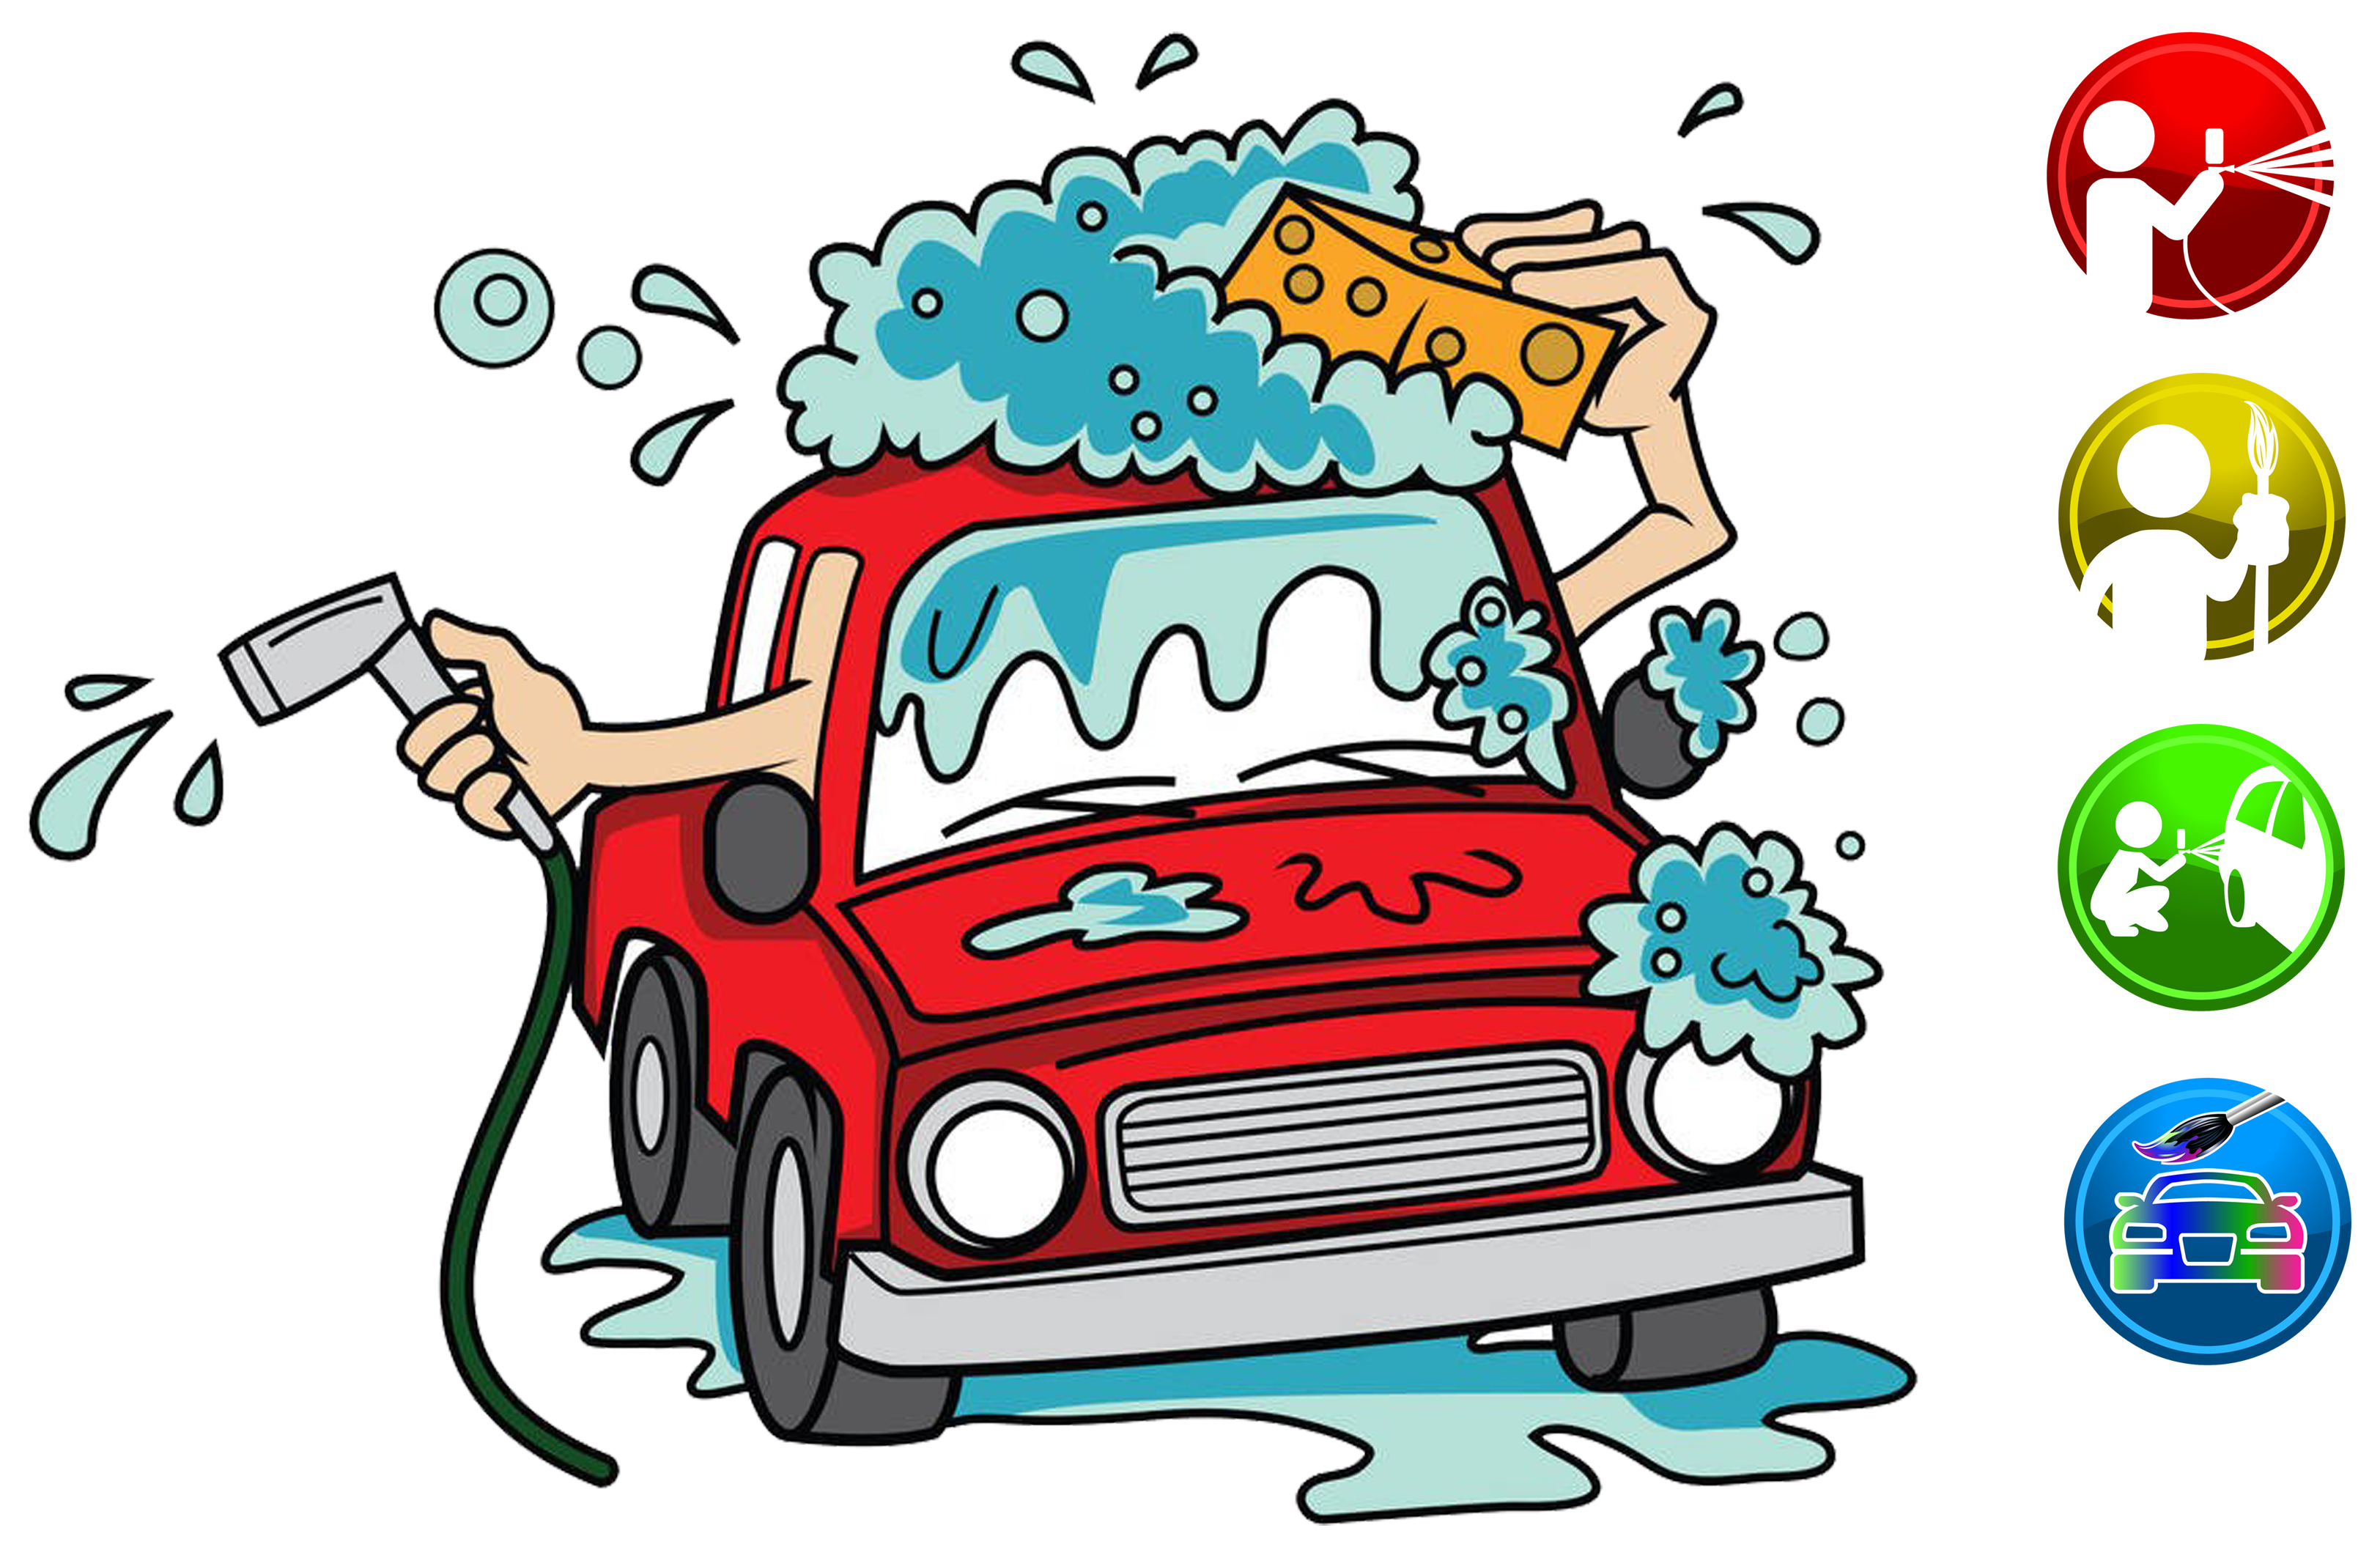 Car motor clipart svg library stock Car wash Cartoon Clip art - Cartoon car wash advertisement 3248*2126 ... svg library stock